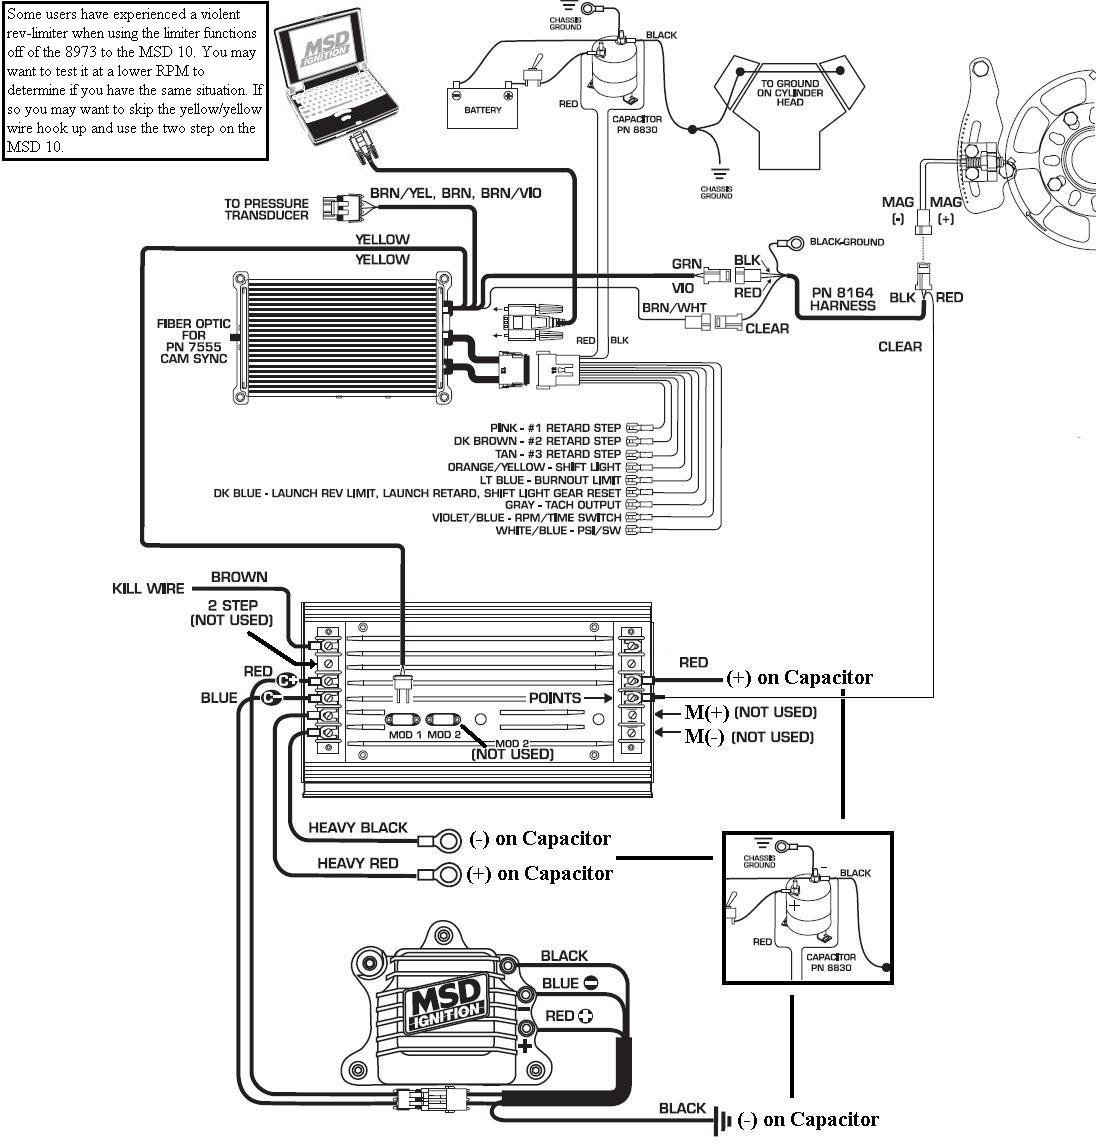 8973 to msd 10 msd blog msd ford wiring diagrams msd streetfire 5520 wiring diagram [ 1096 x 1145 Pixel ]